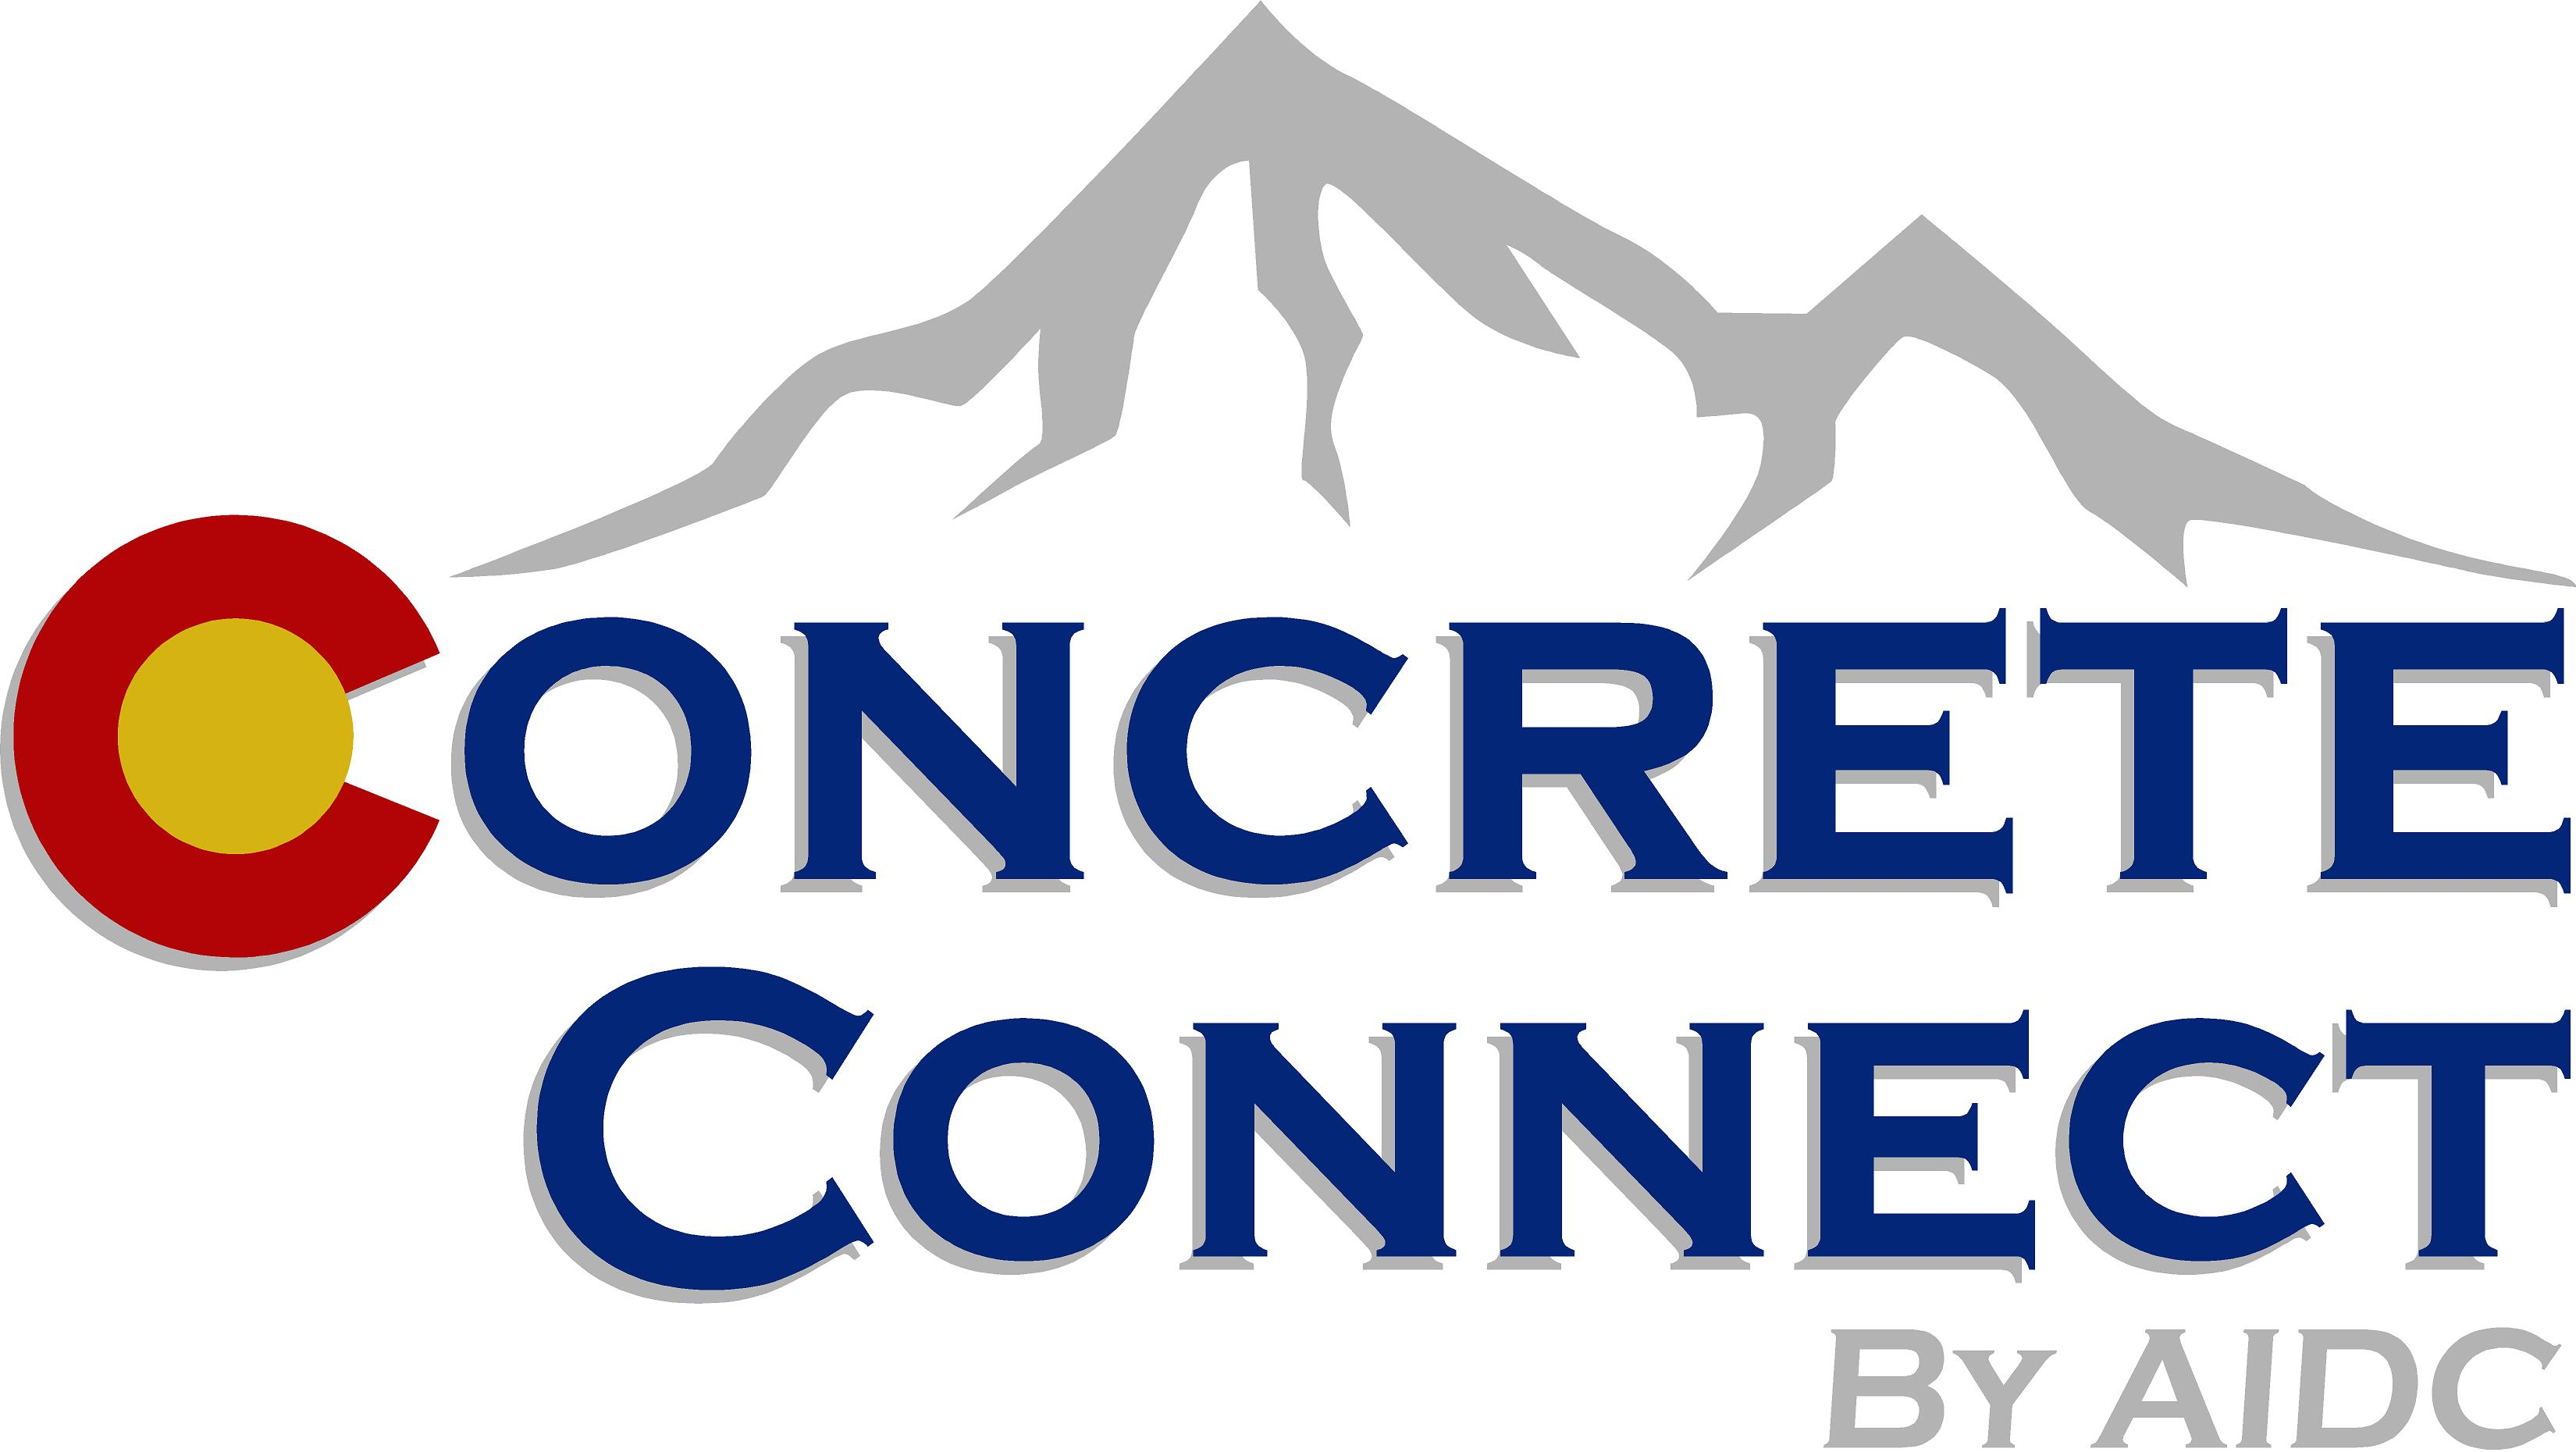 Concrete Connect